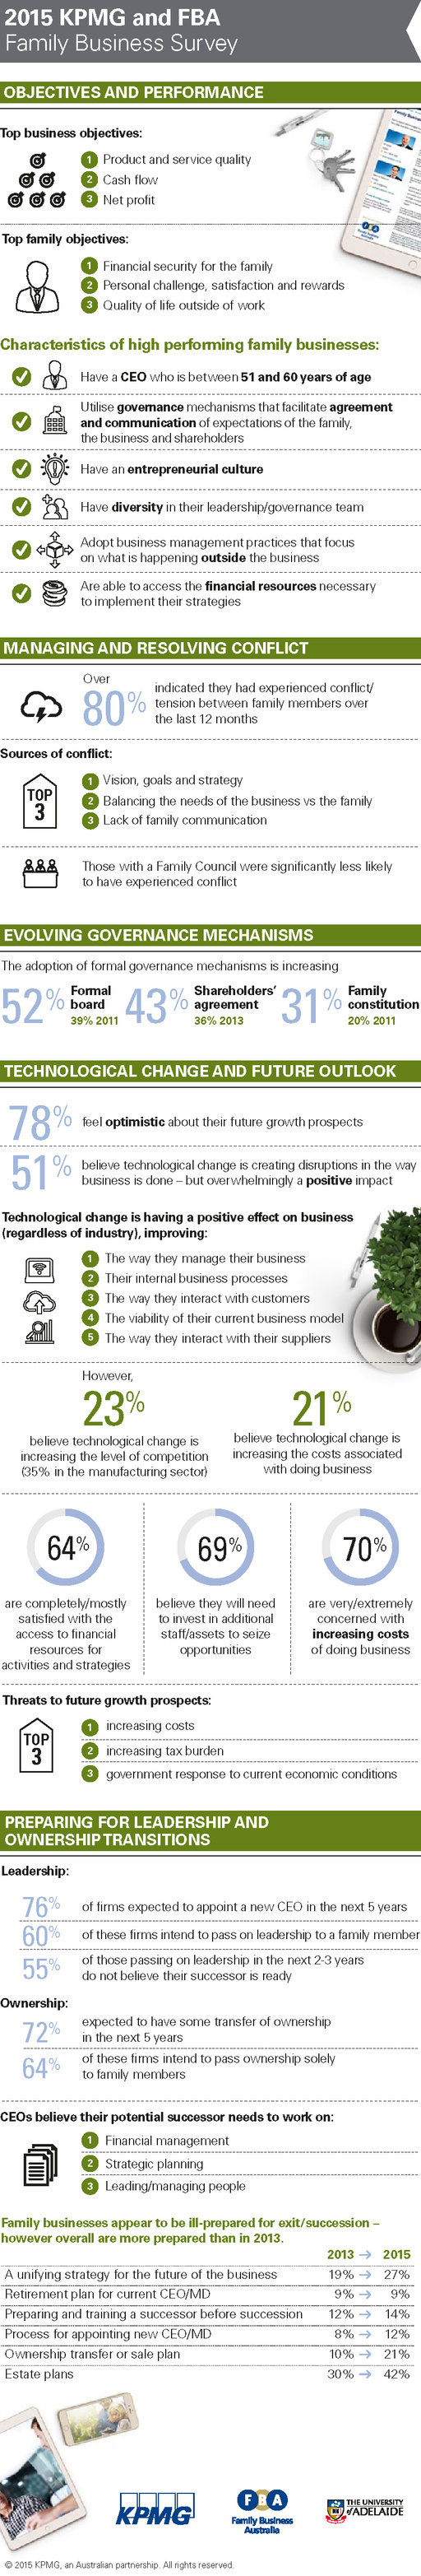 Family Business Survey 2015 infographic